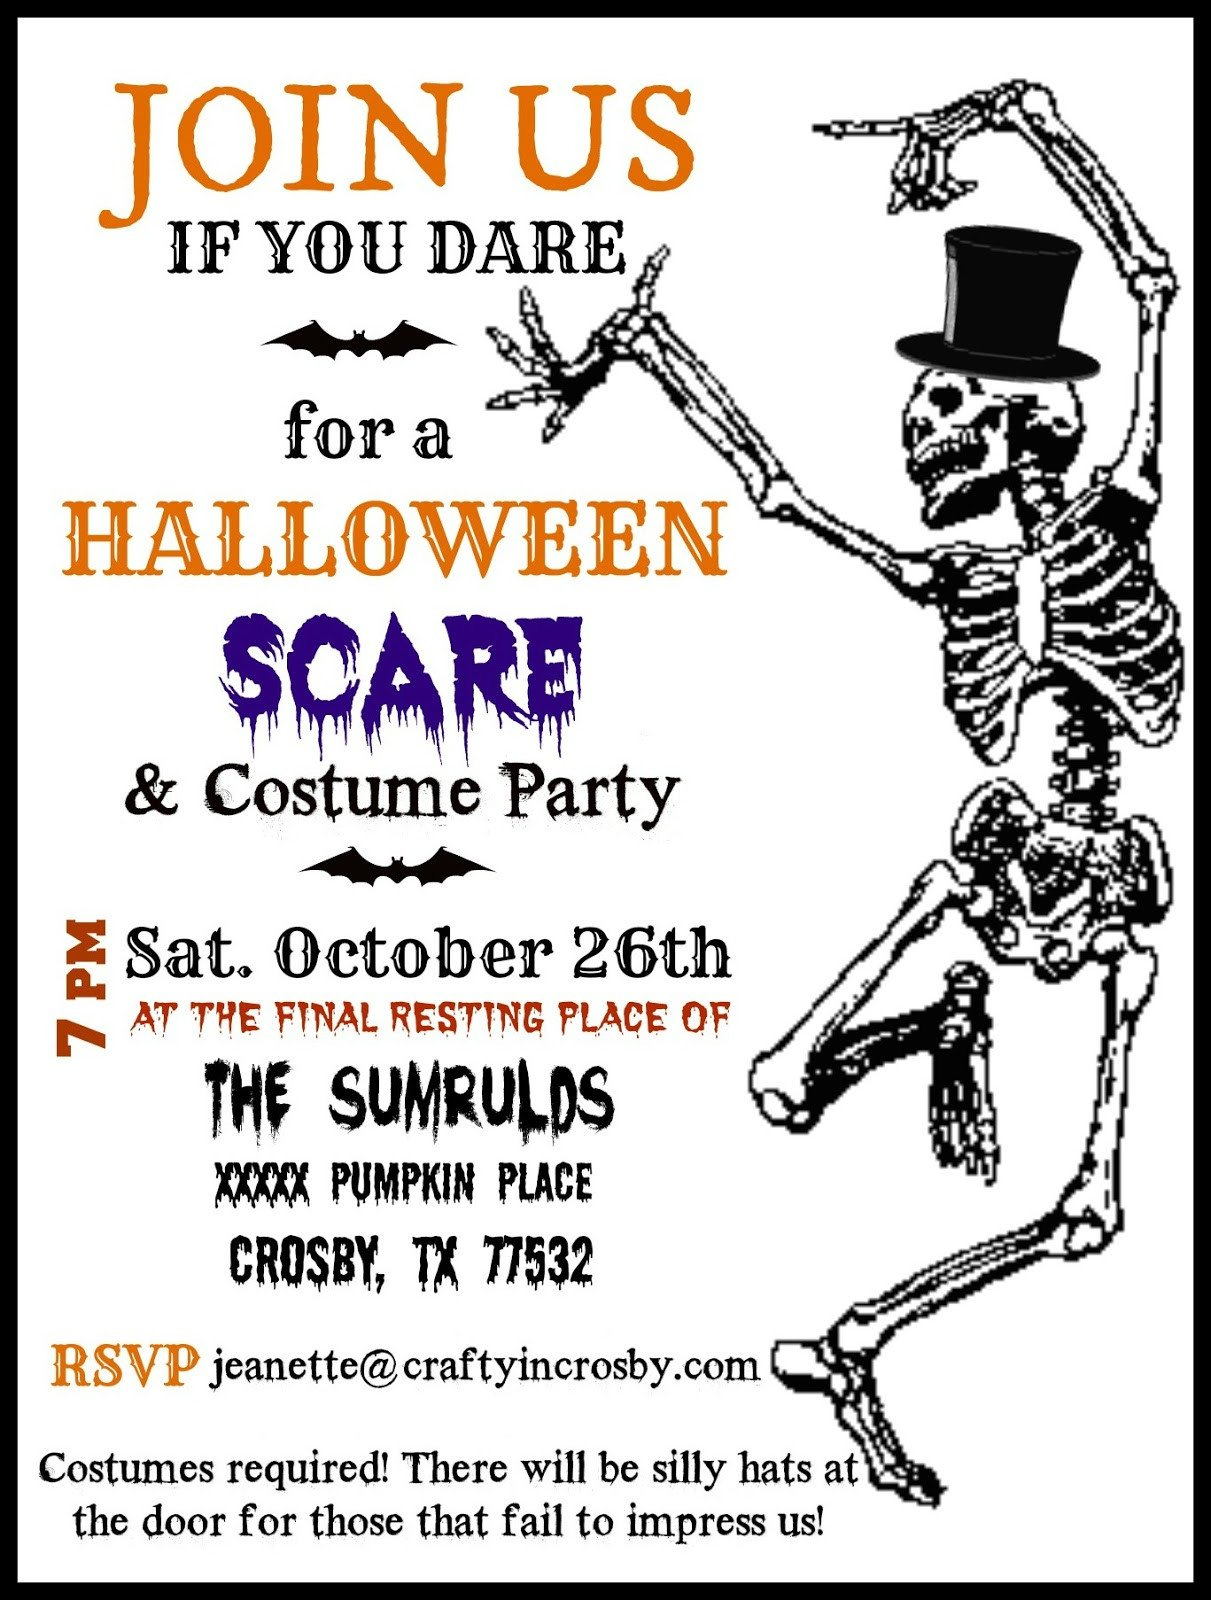 Free Halloween Party Invitation Templates Crafty In Crosby Halloween Party Invitations with Template